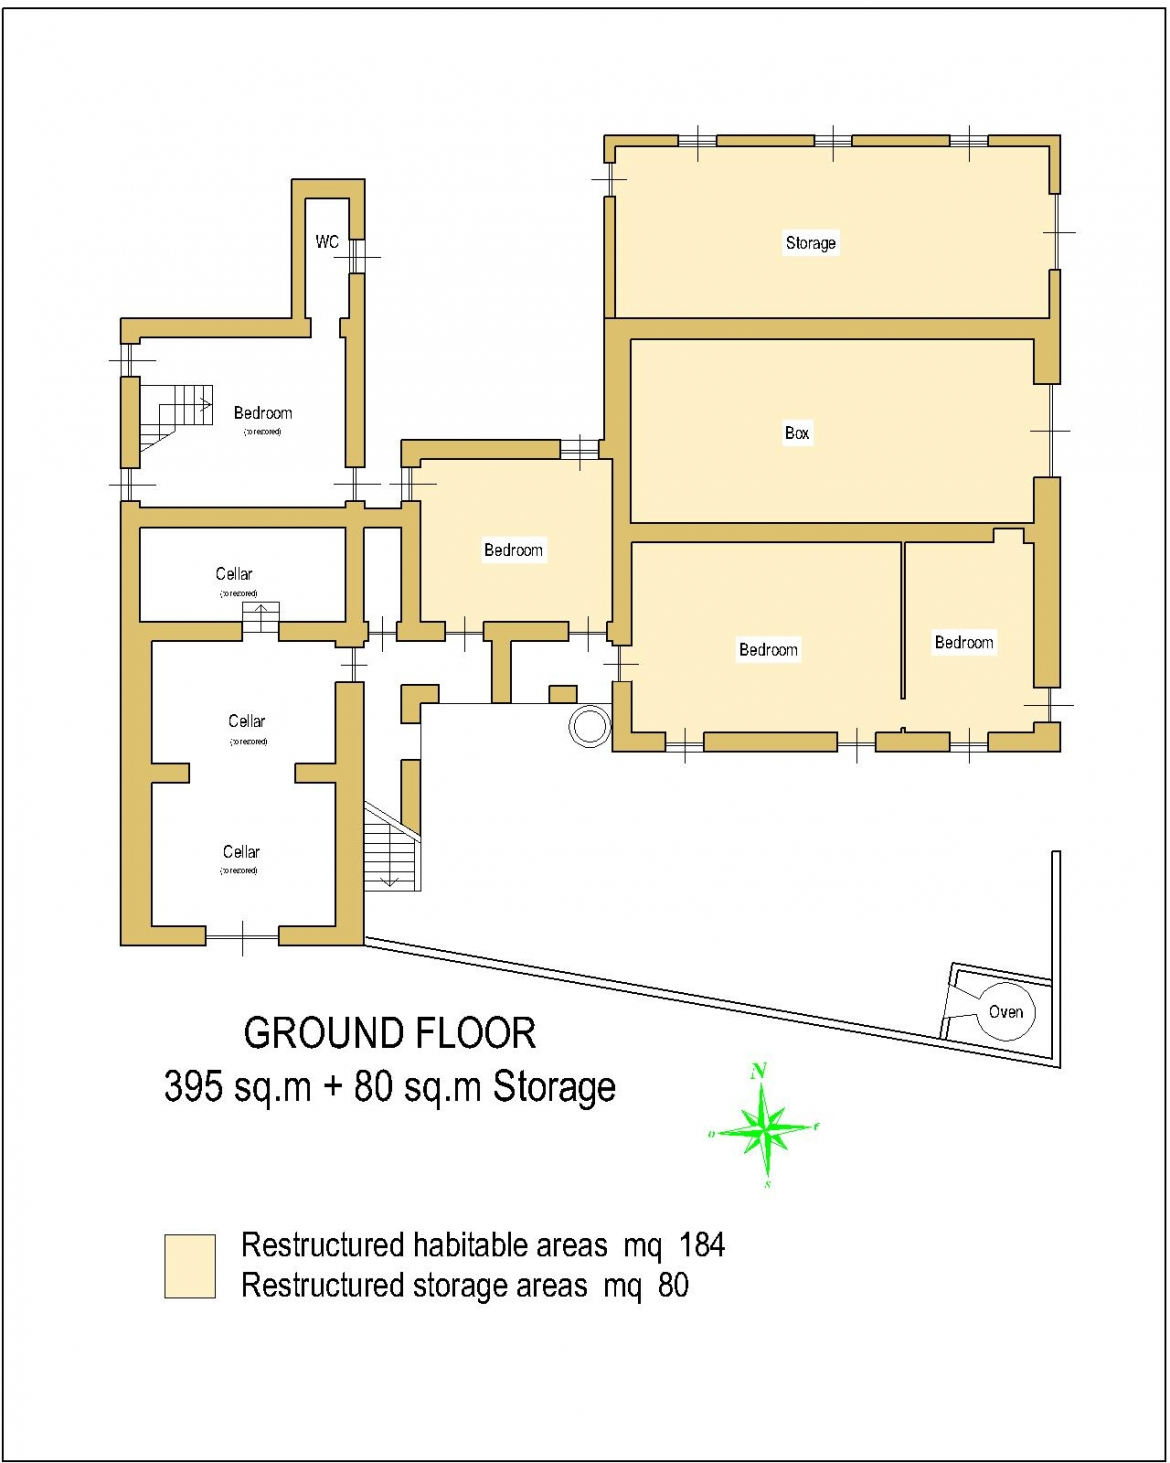 1711-GROUND-FLOOR.jpg